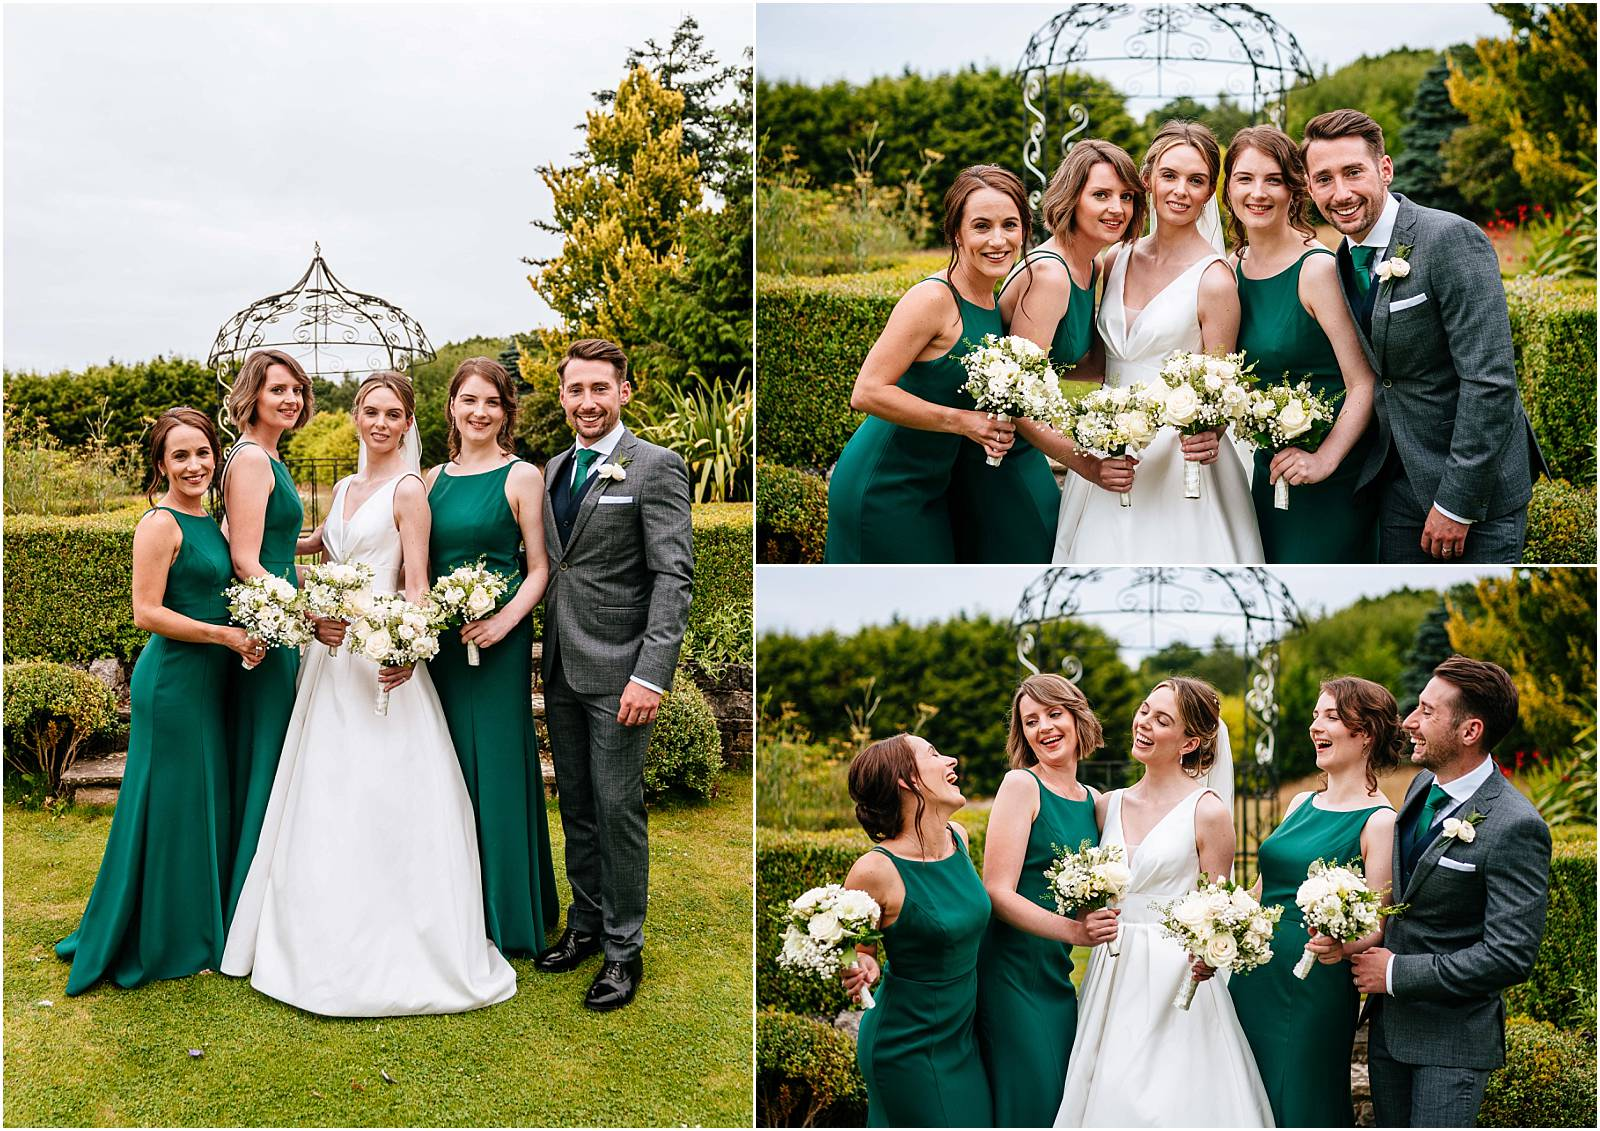 relaxed bridemaid photographs